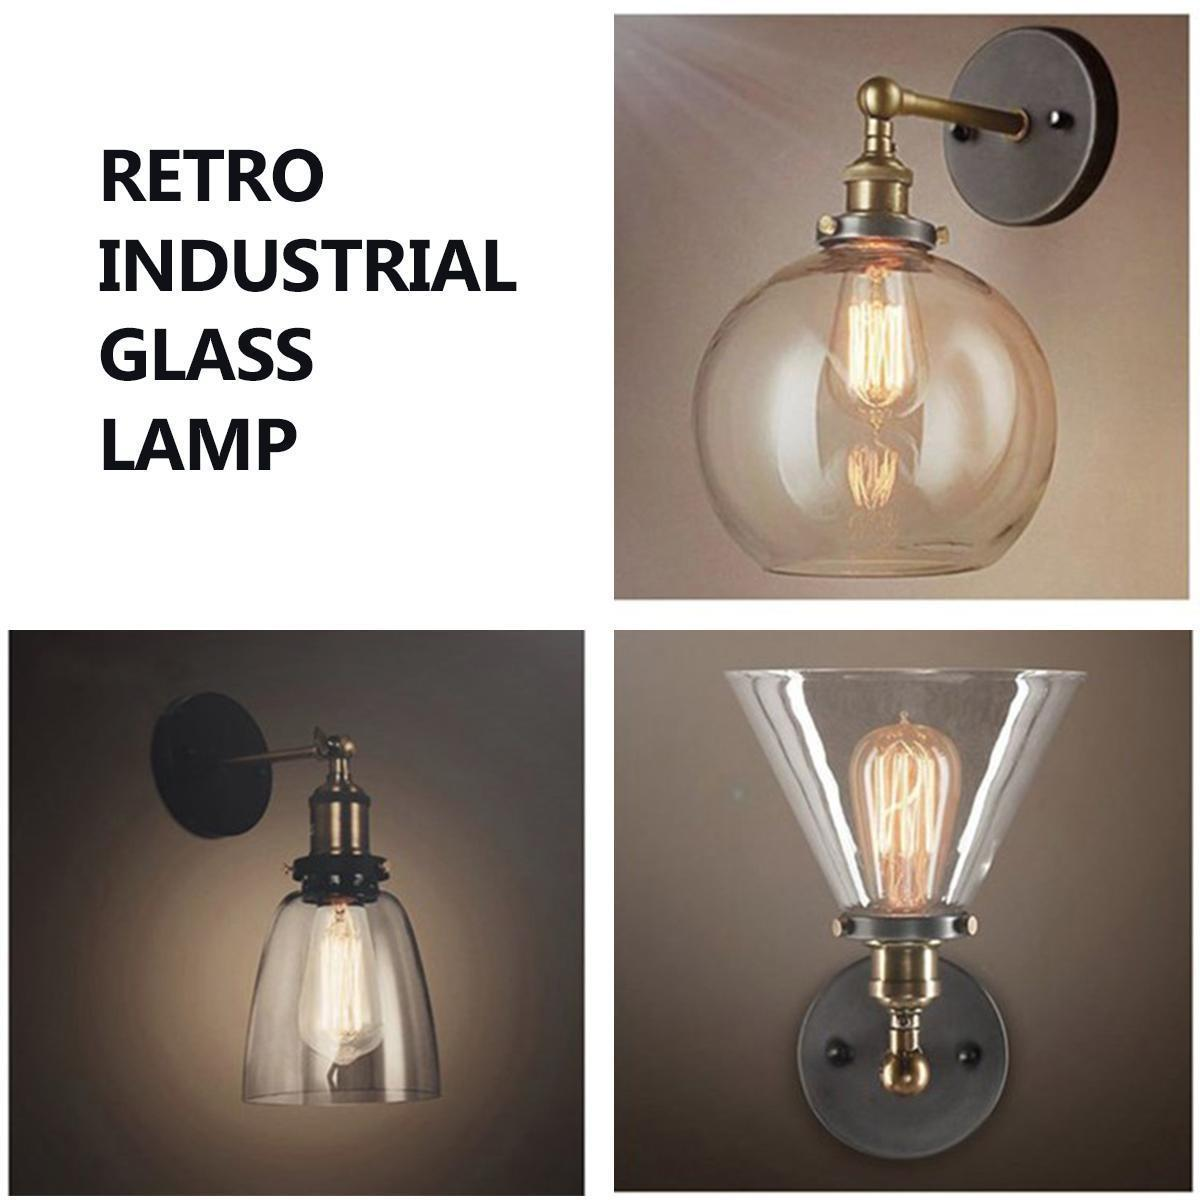 Glass Edison Lamp Vintage Industrial Glass Wall Lamp Transparent Glass Edison Bulb Wall Triangle